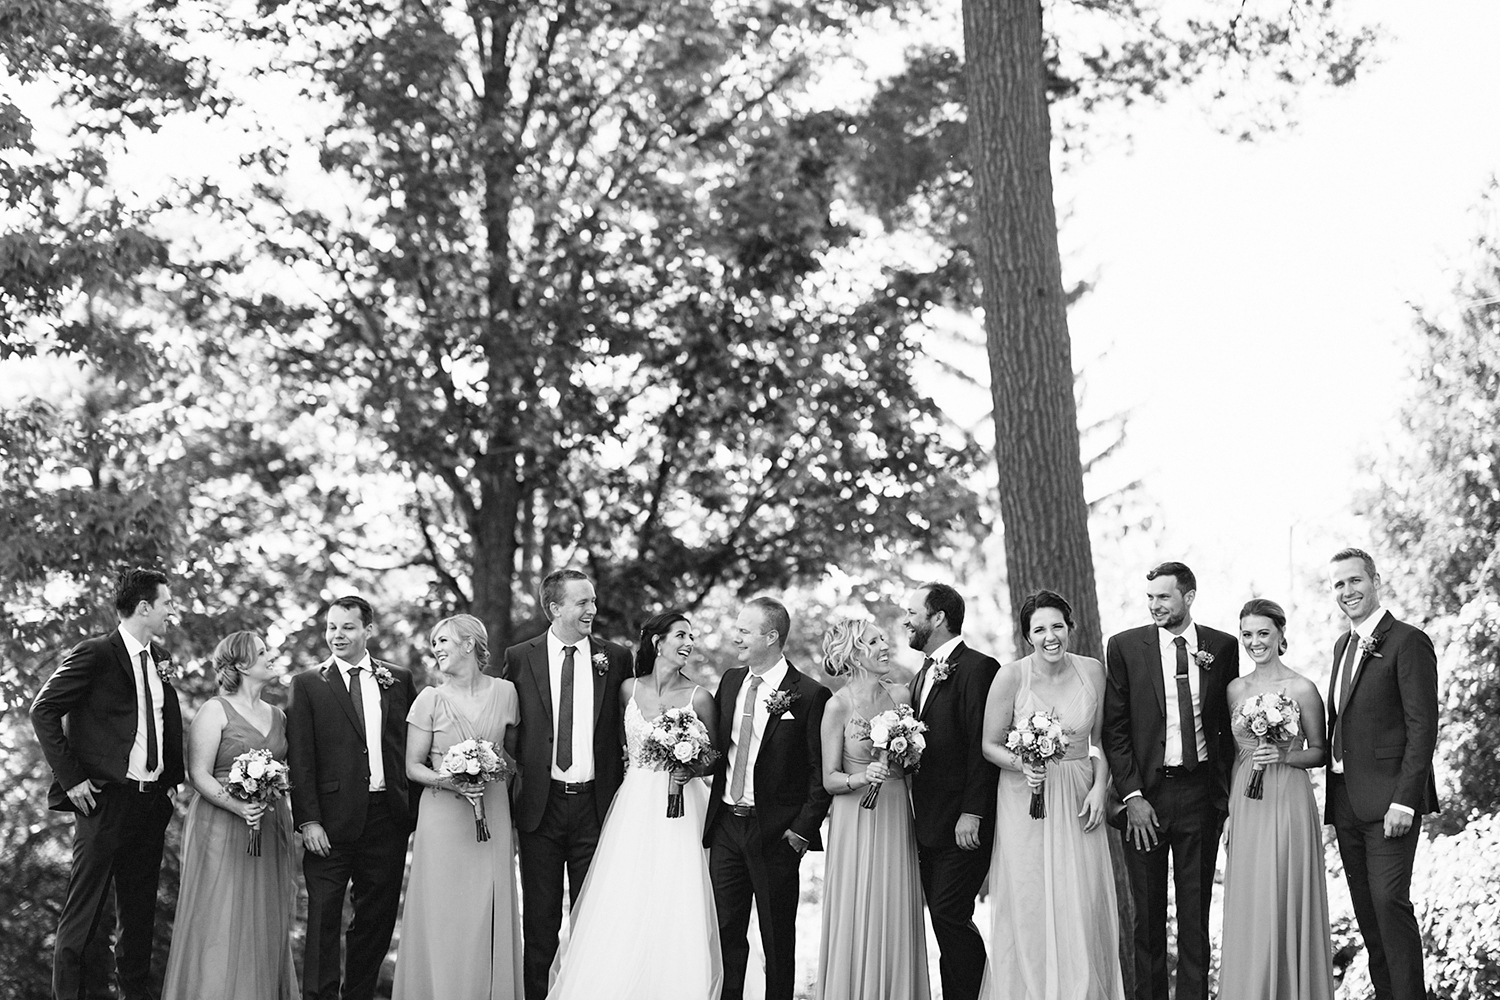 Bridal-Party-all-together-At-Egaridge-Resort-Venue-Muskoka-Ontario-Wedding-Photography-by-Ryanne-Hollies-Photography-Toronto-Documentary-Wedding-Photographer.jpg